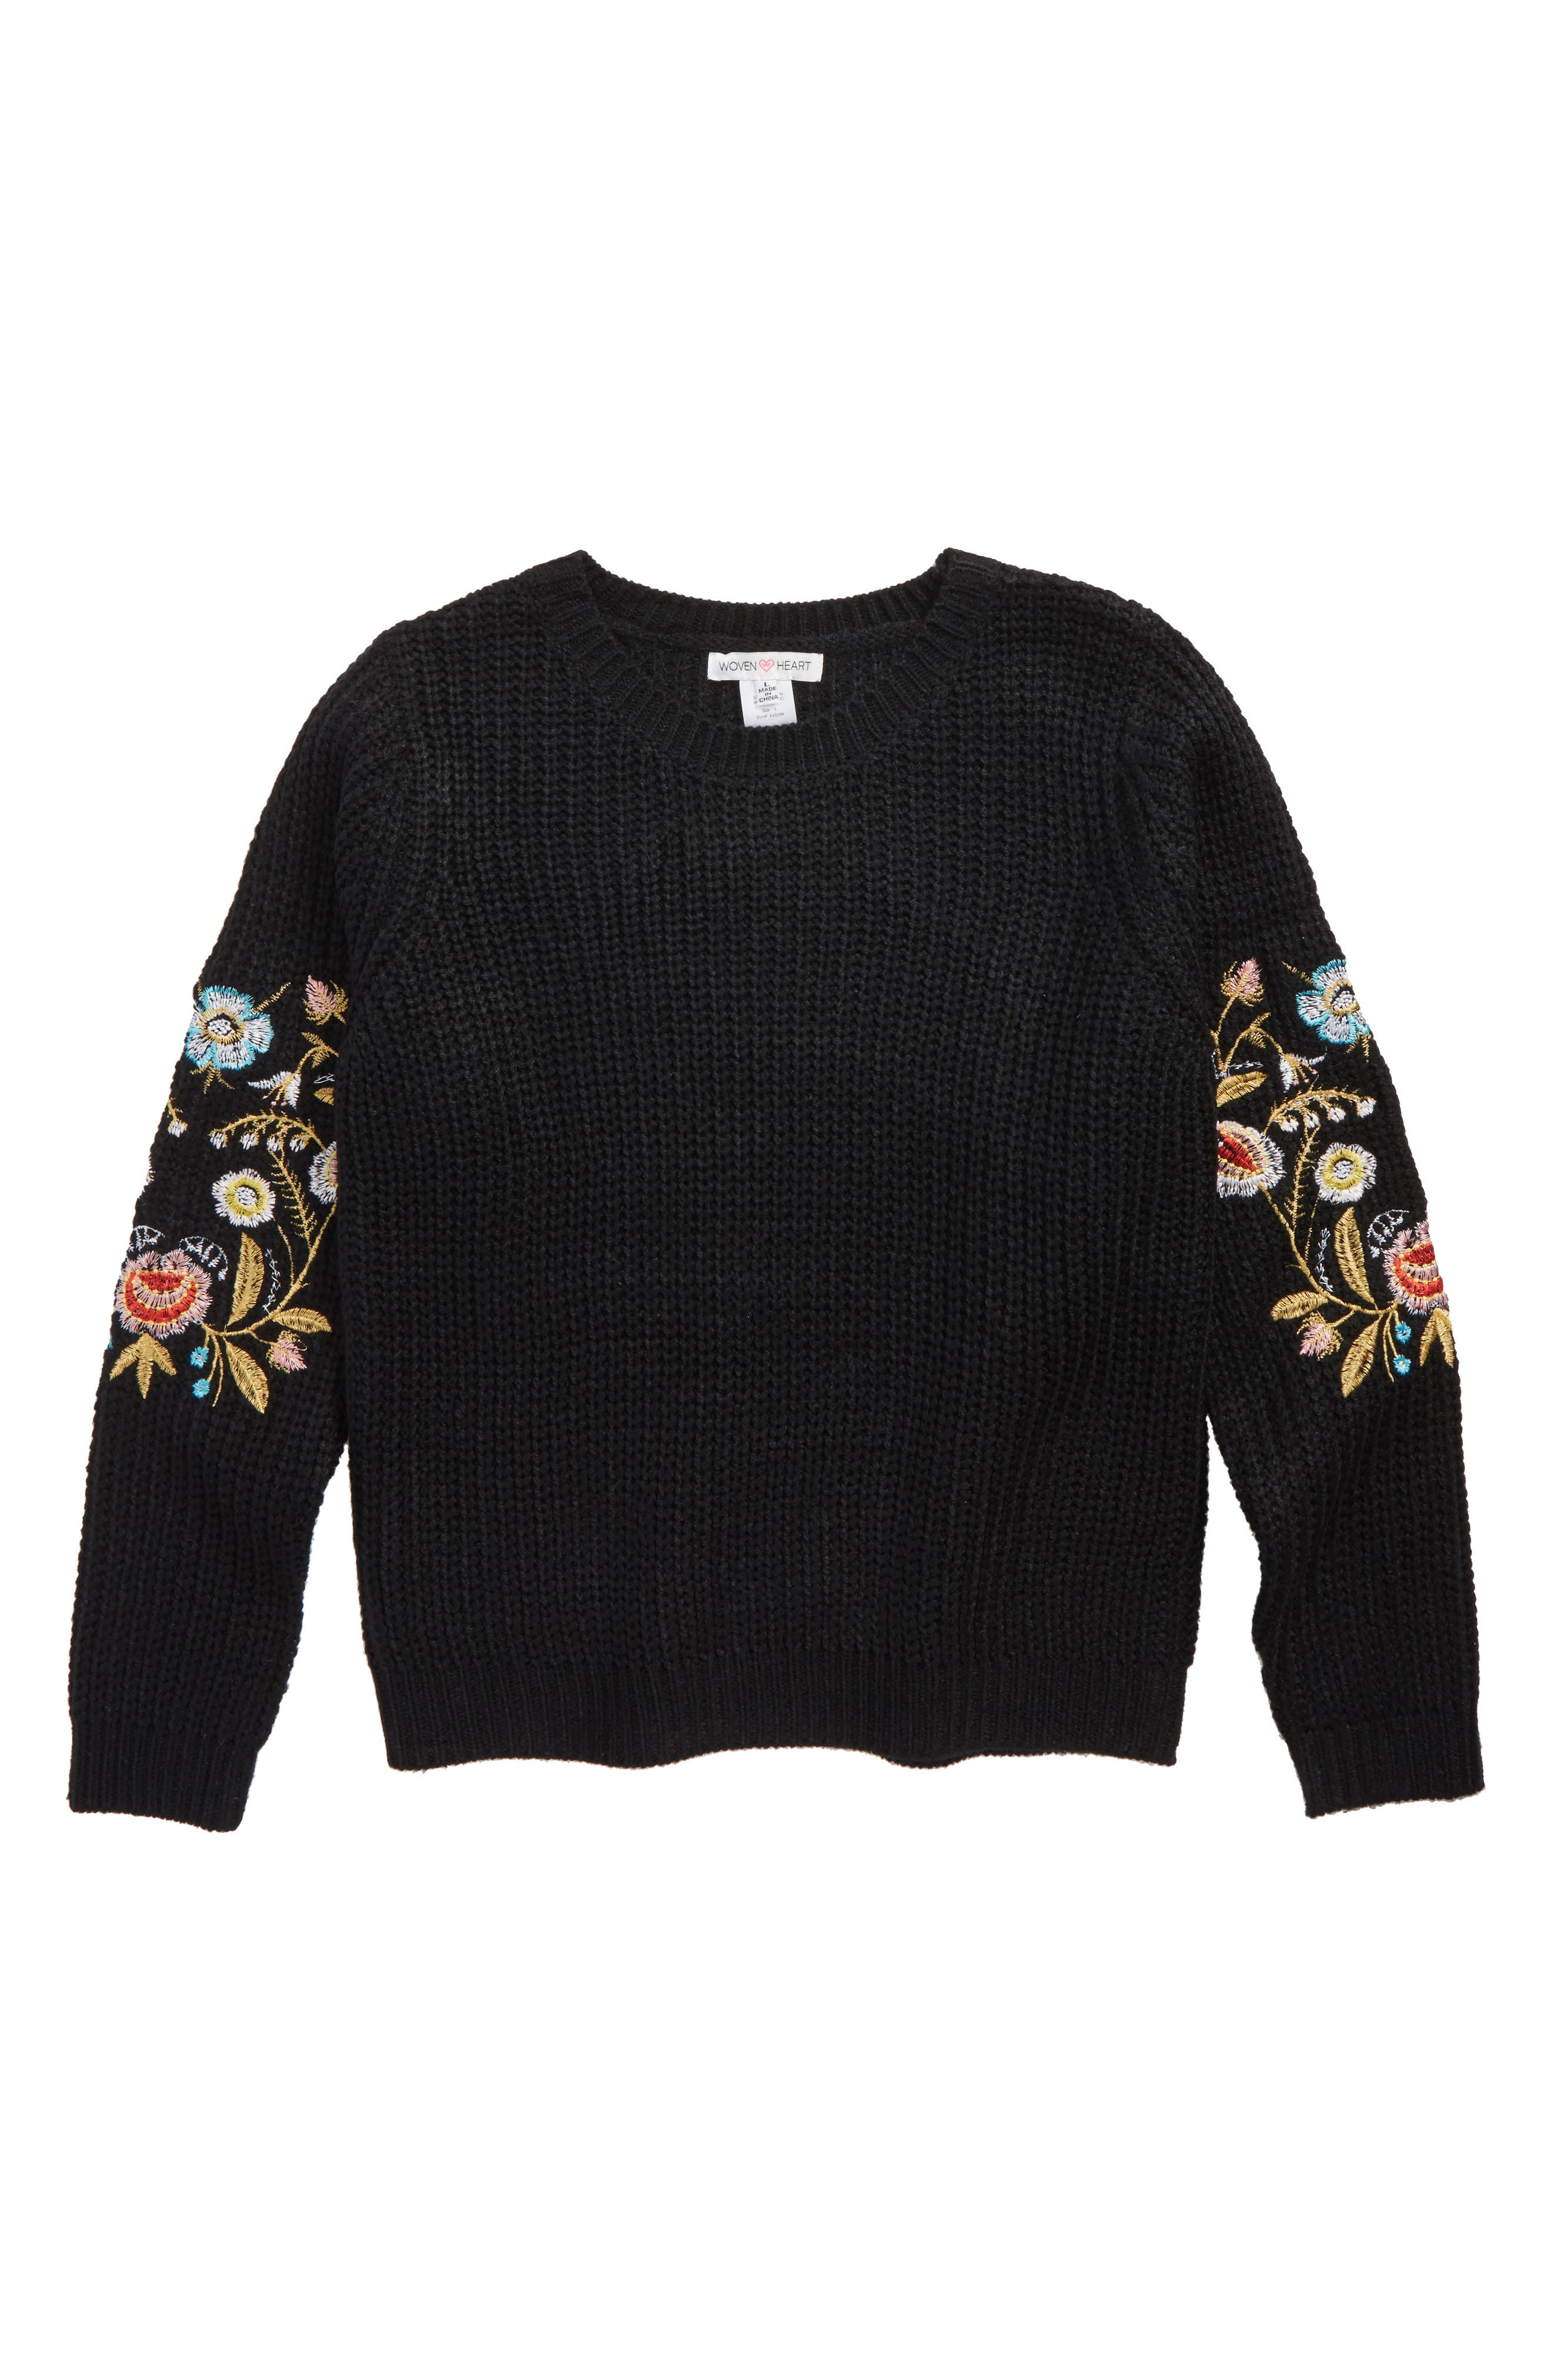 Woven Heart Embroidered Sleeve Sweater (Big Girls)